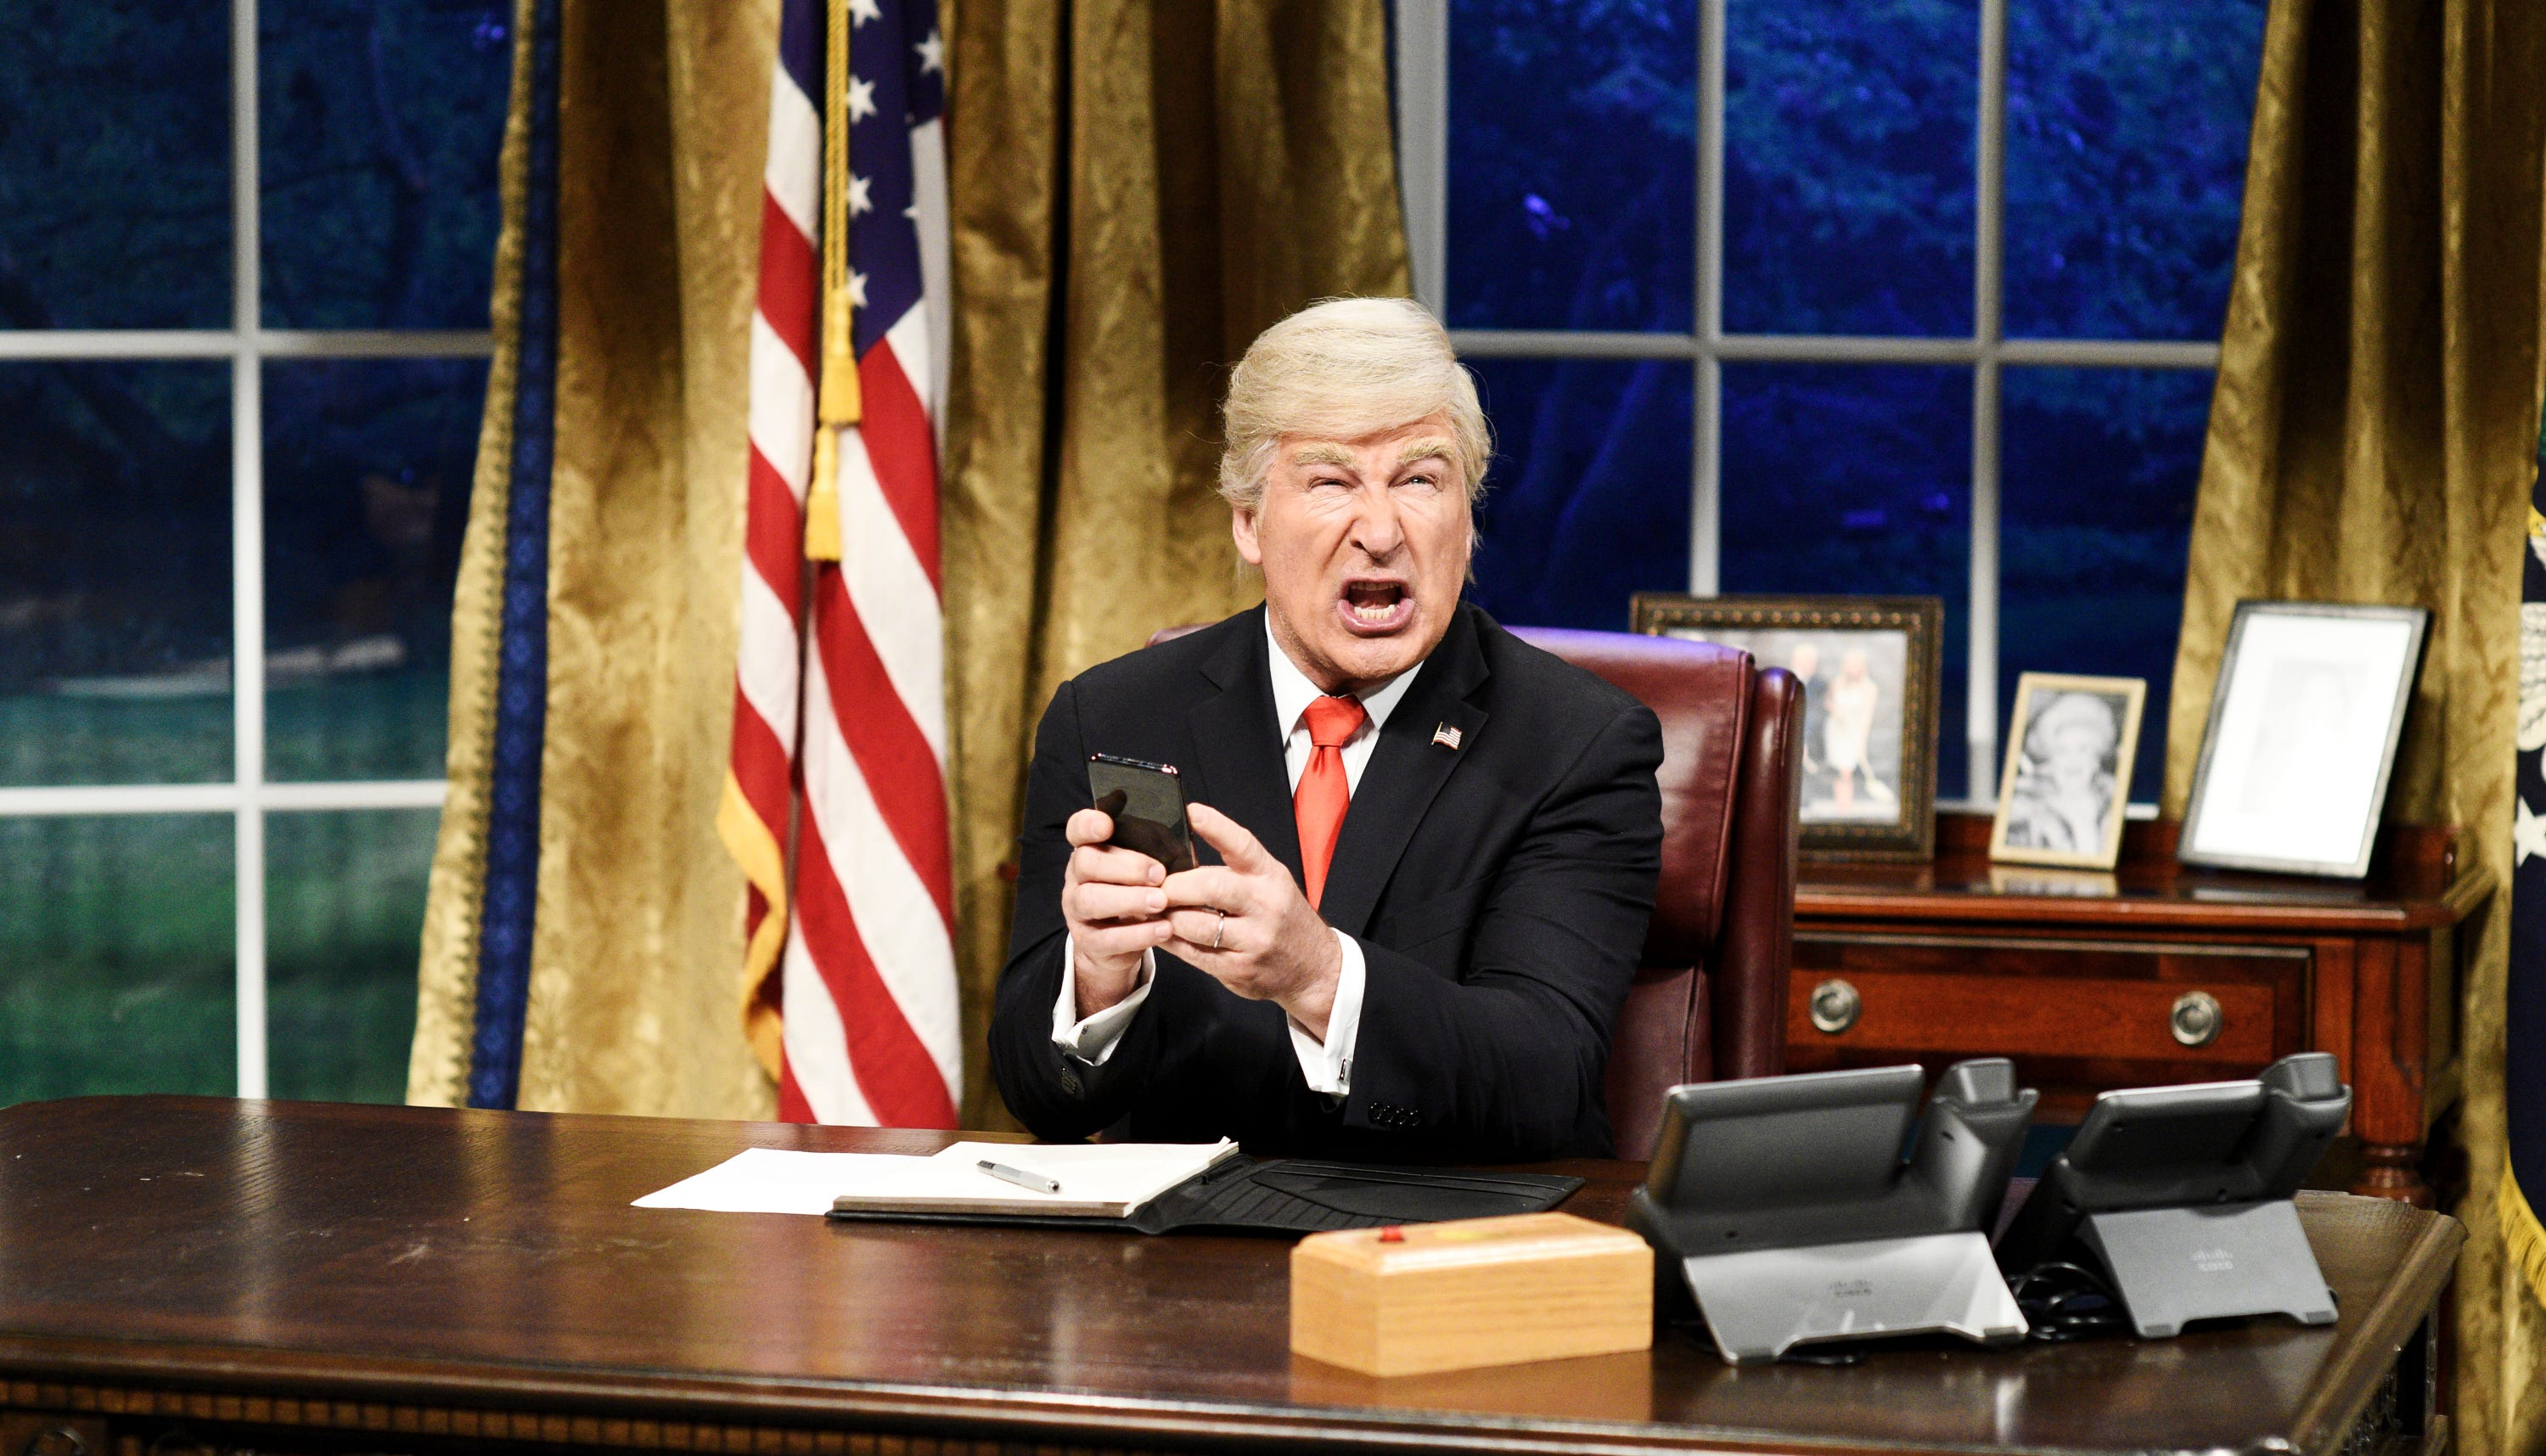 """SATURDAY NIGHT LIVE -- """"Sandra Oh"""" Episode 1762 -- Pictured: Alec Baldwin as Donald Trump during the """"Mueller Report"""" Cold Open on Saturday, March 30, 2019 -- (Photo by: Will Heath/NBC)"""